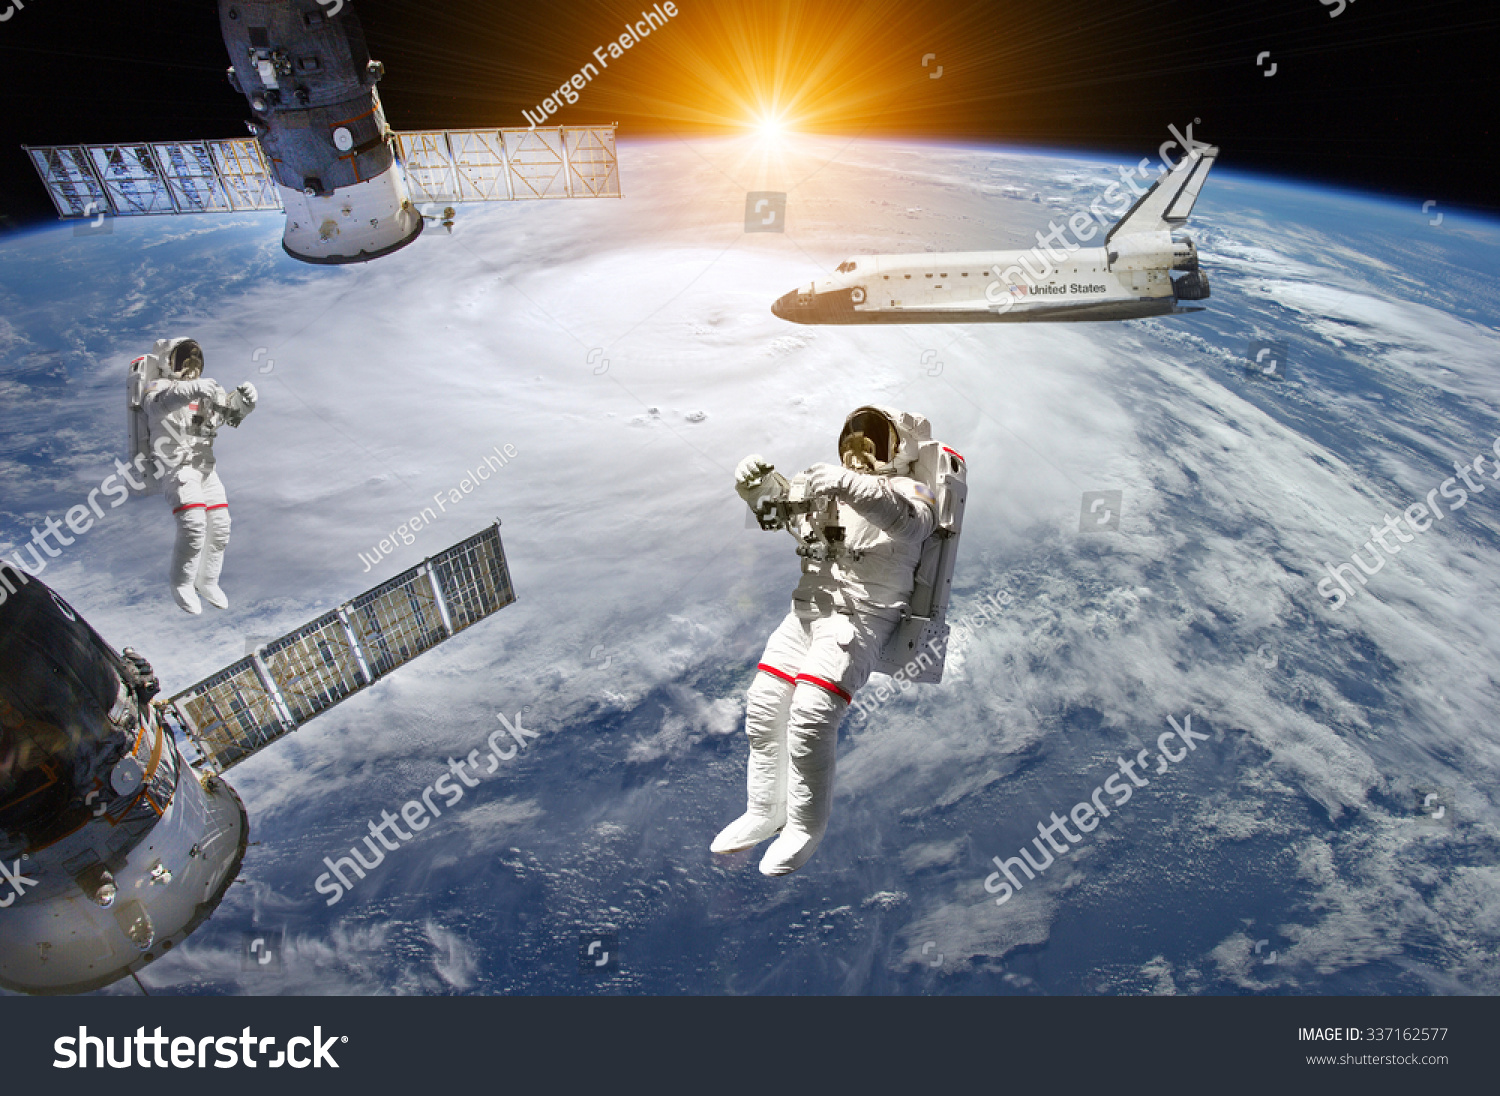 Astronauts space shuttle and station in outer space Elements of this image furnished by NASA